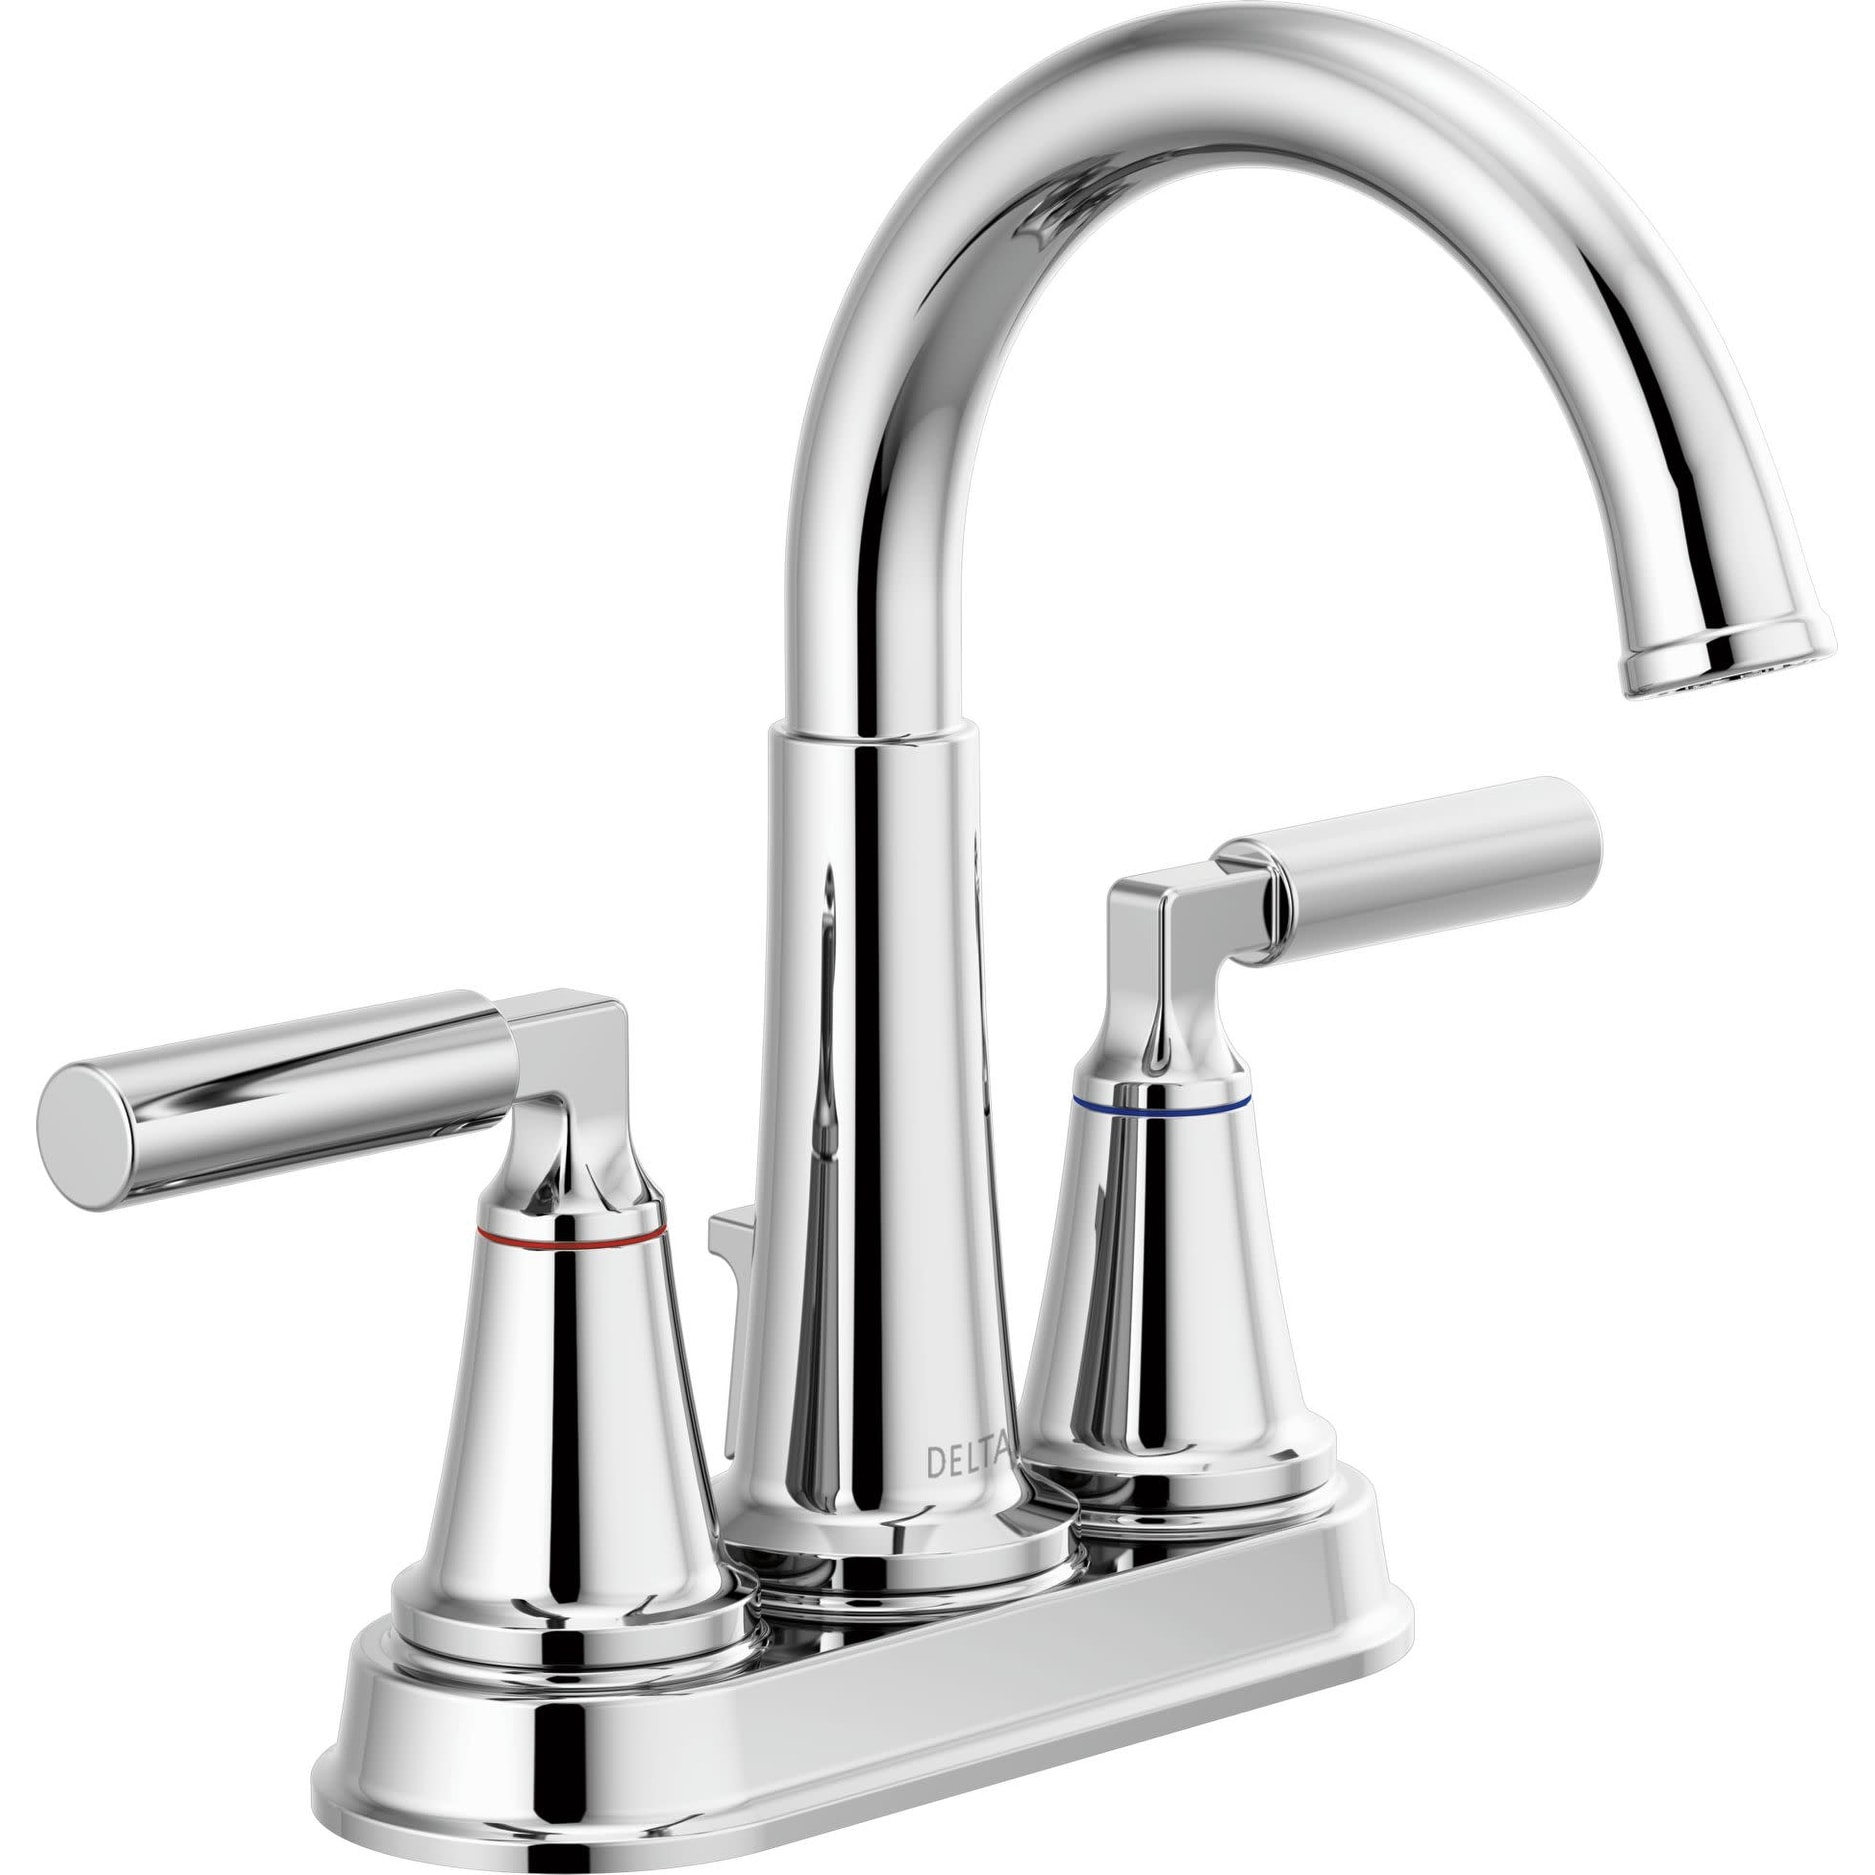 Shop Black Friday Deals On Delta 2548lf Mpu Bowery 1 2 Gpm Centerset Bathroom Faucet With Pop Up Overstock 29567710